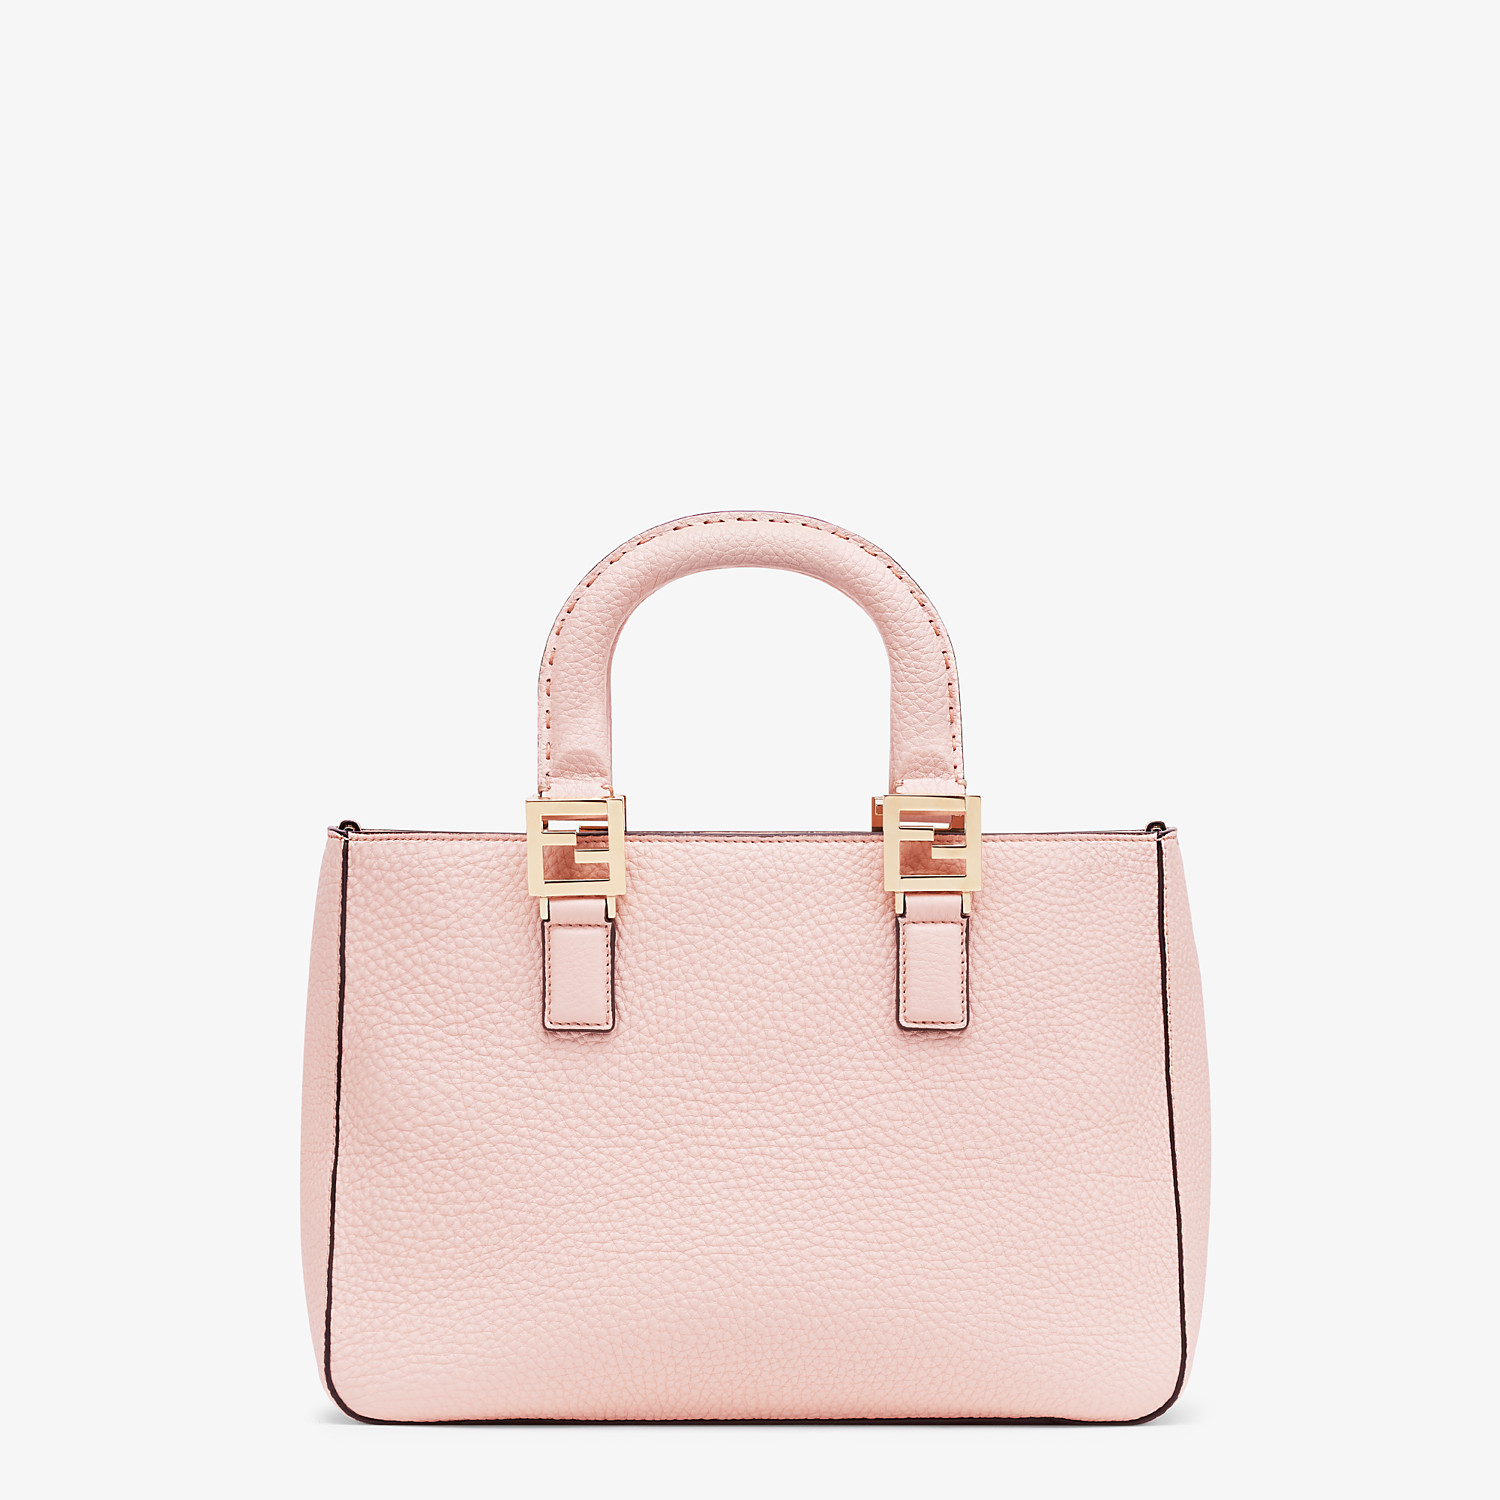 FENDI SMALL FF TOTE - Pink leather bag - view 4 detail